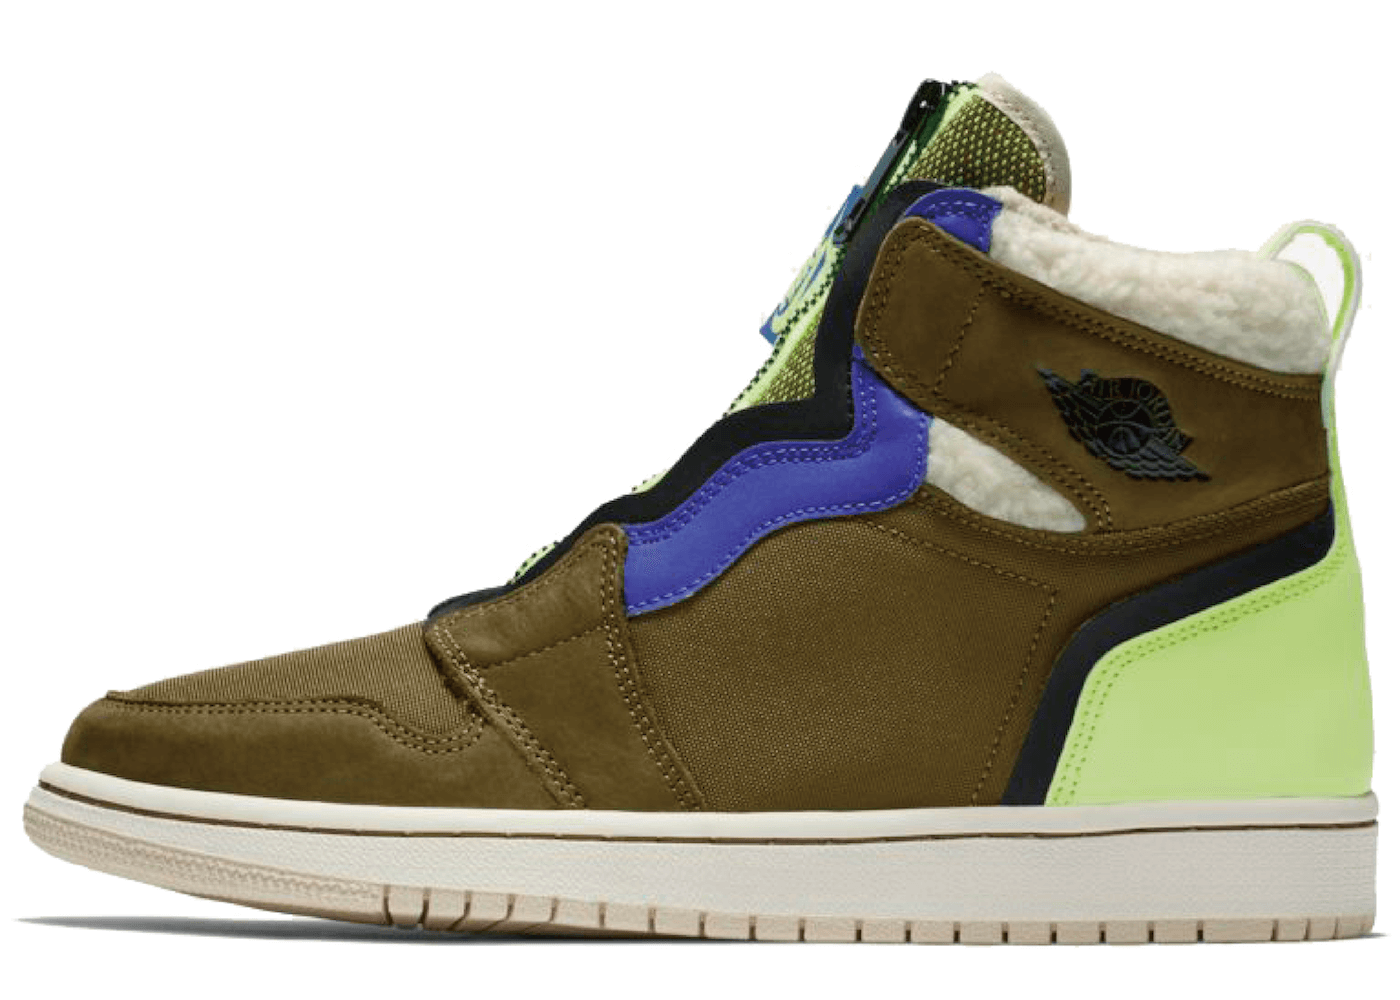 Nike Air Jordan 1 Retro High Zip Utility Pack (W)の写真